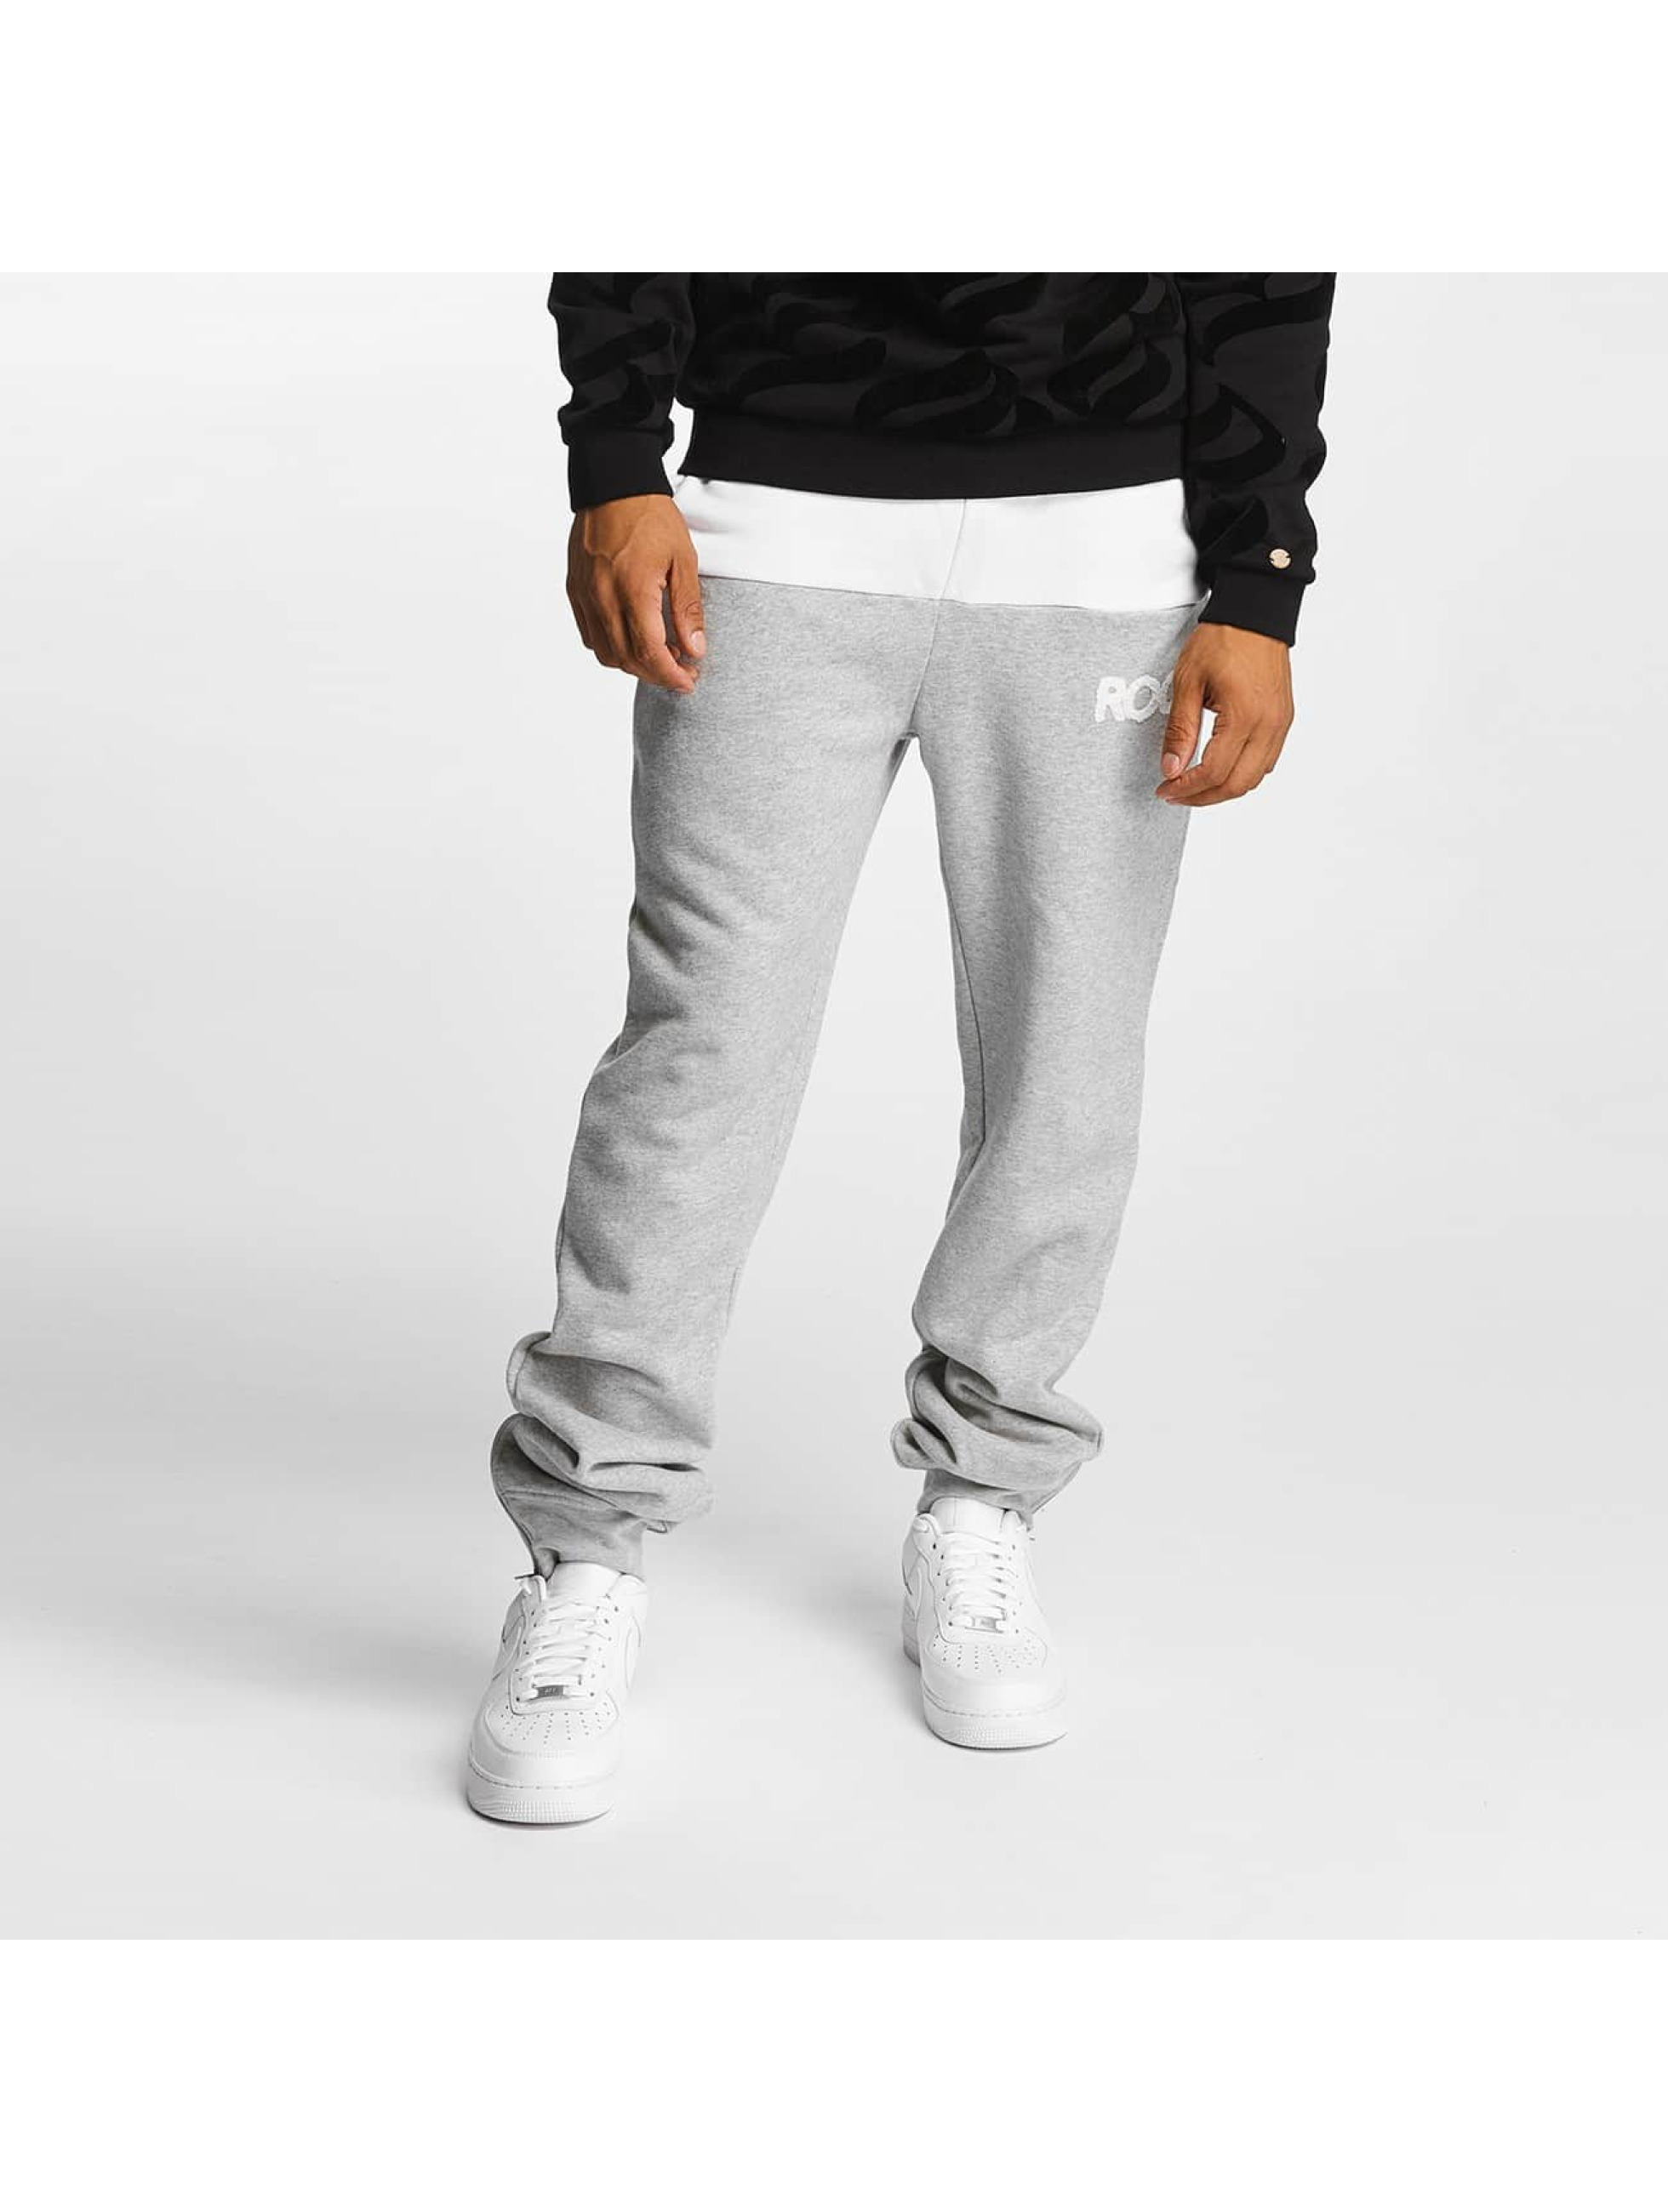 Rocawear Männer Jogginghose Retro Sport Fleece in grau